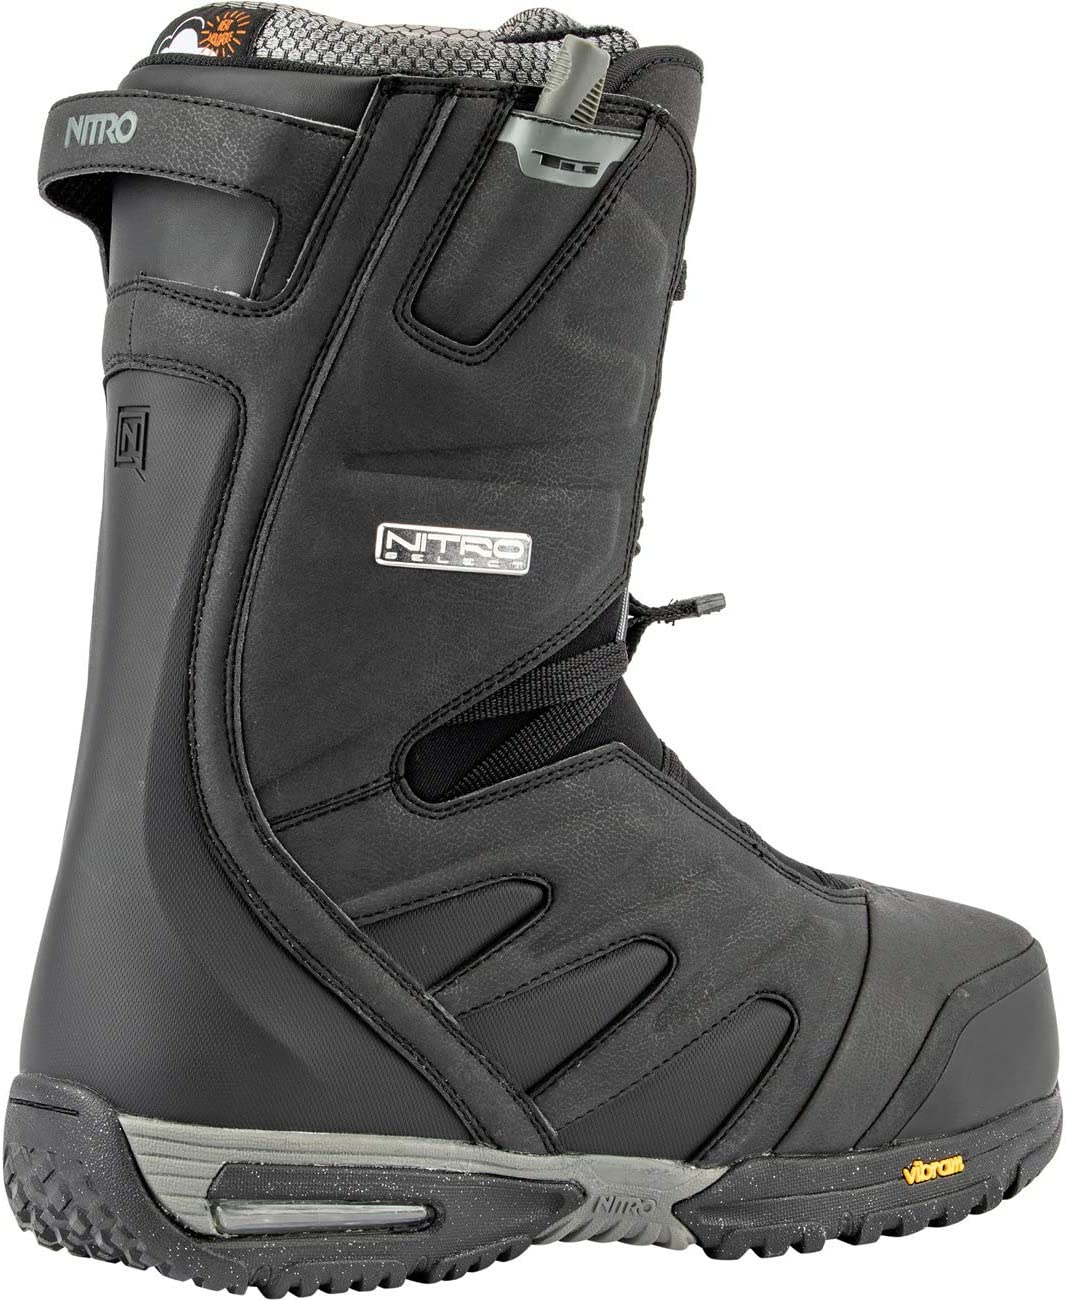 Black 29.5 Nitro Snowboards Mens Select TLS 20 All Mountain Freeride Freestyle Premium Speed Lacing System Boat Snowboard Boat